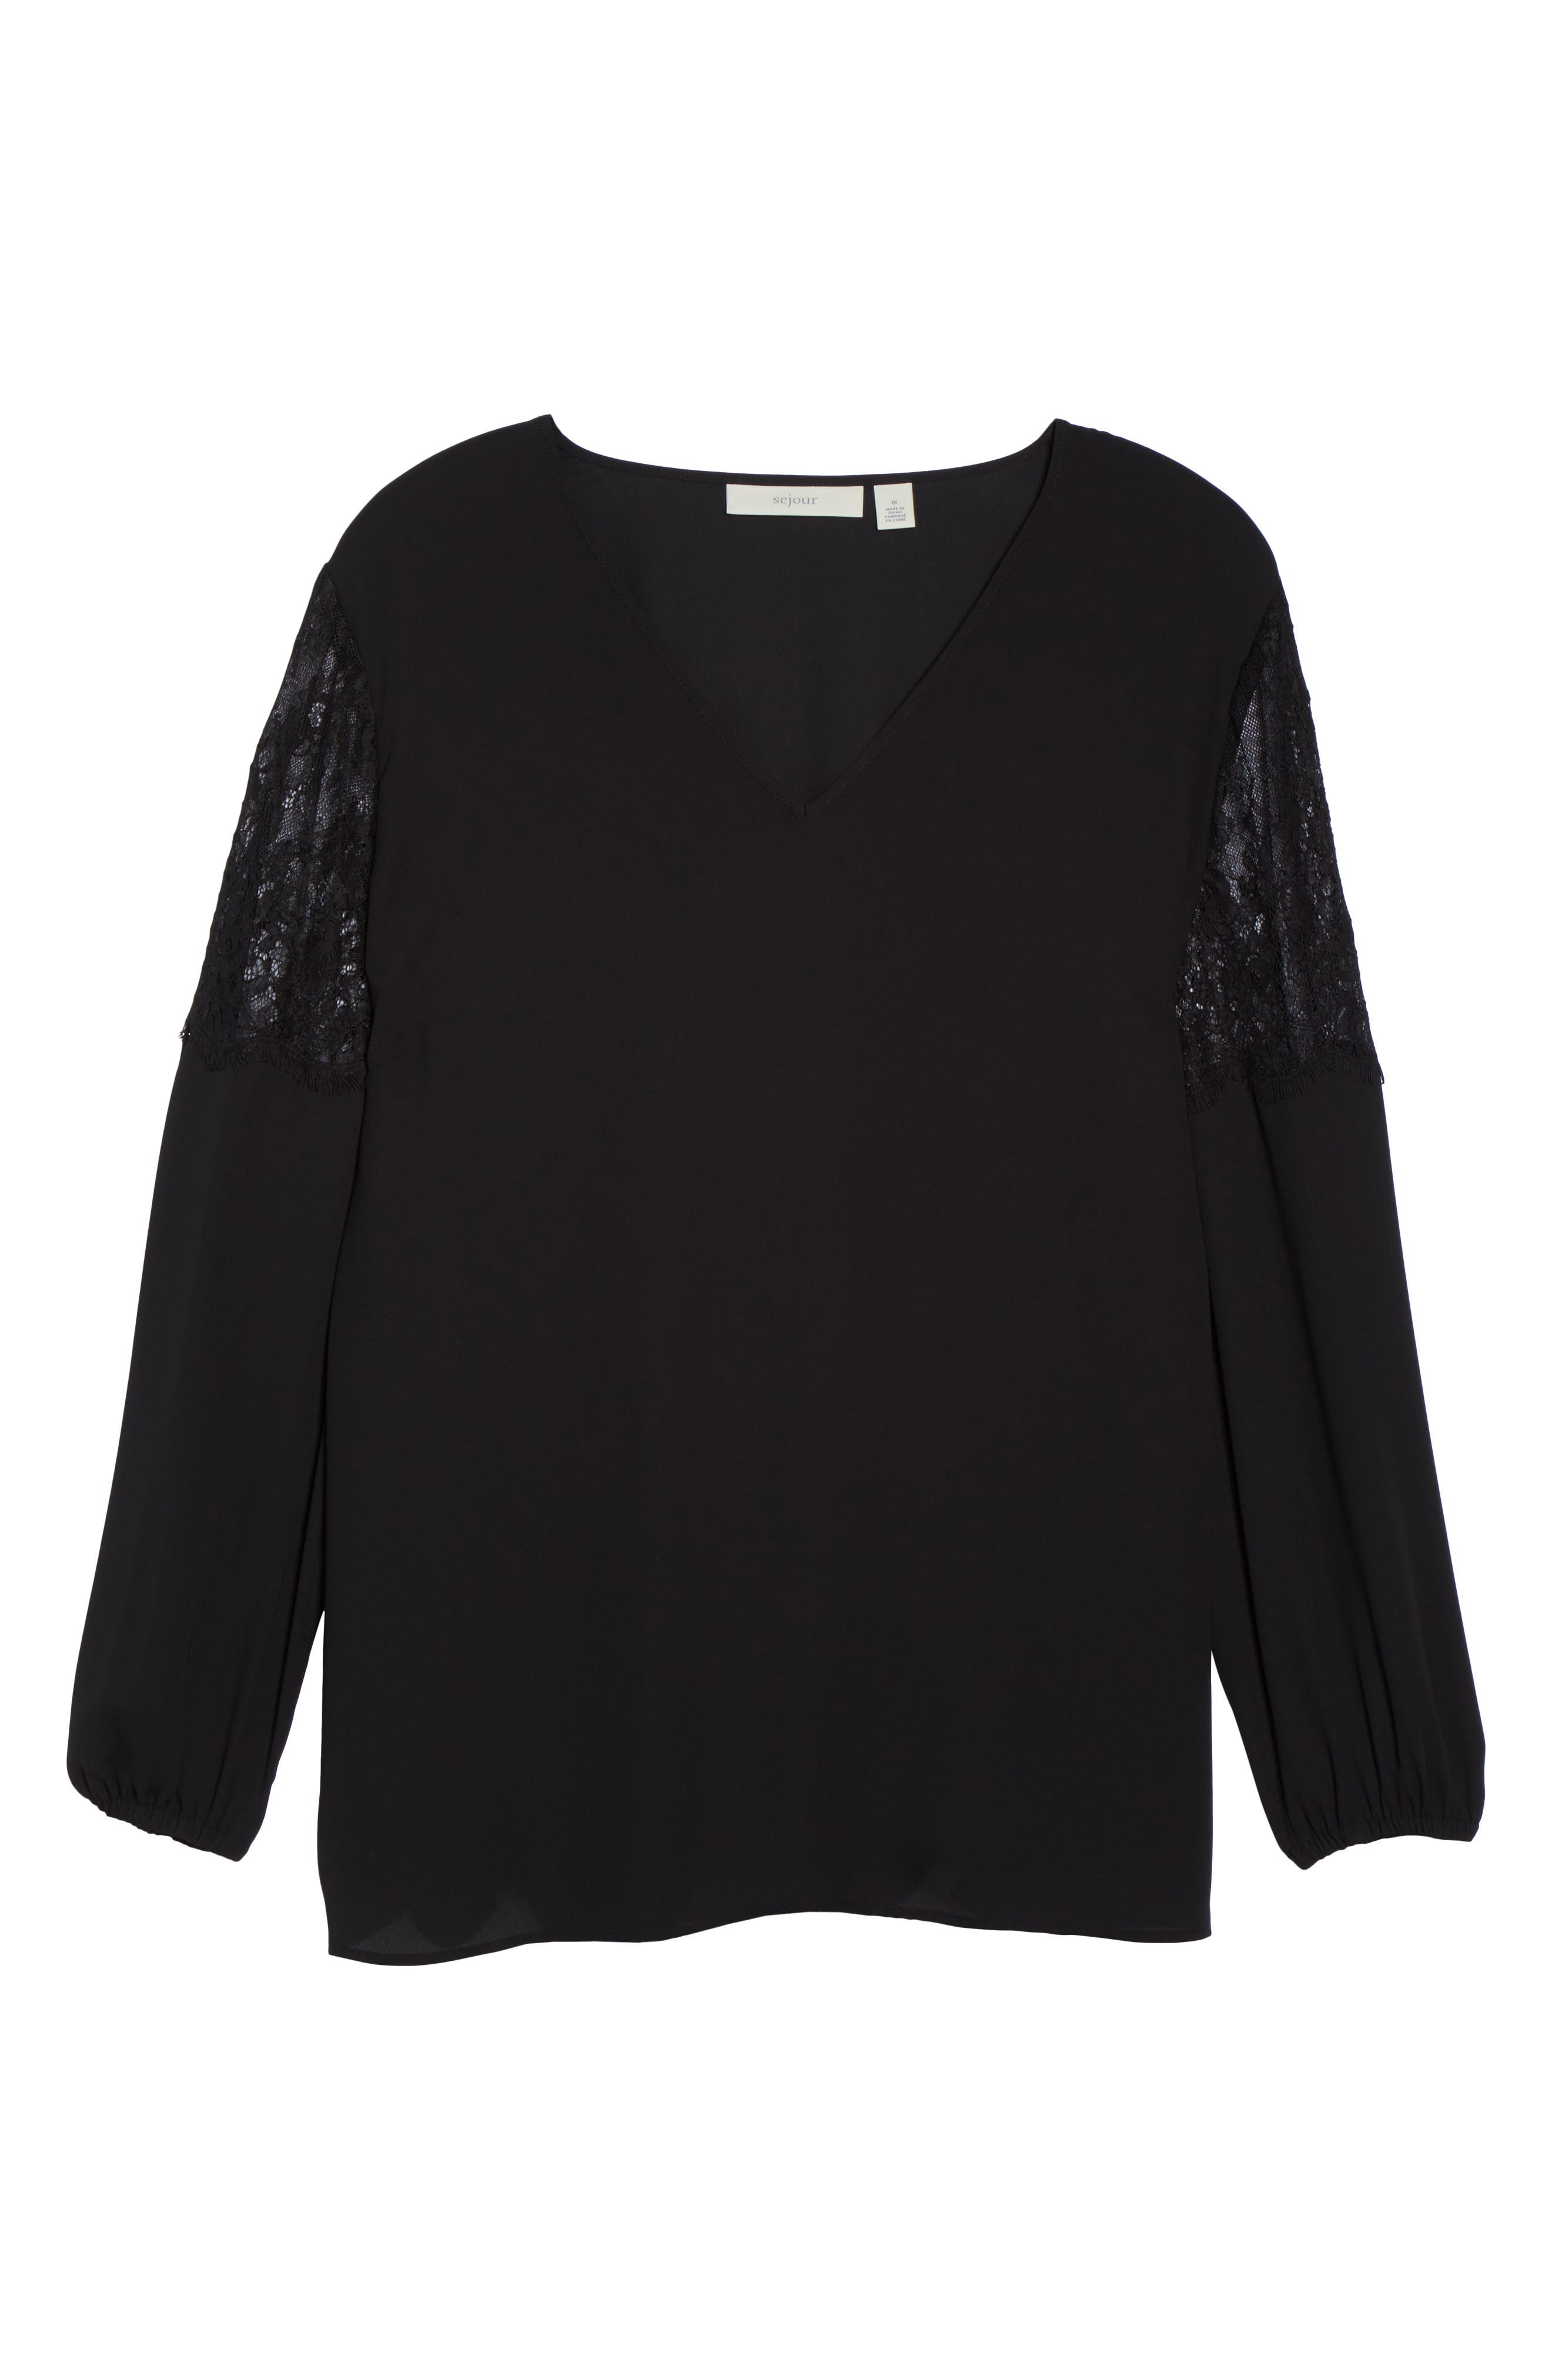 Lace Inset Sleeve Top,                             Alternate thumbnail 6, color,                             001